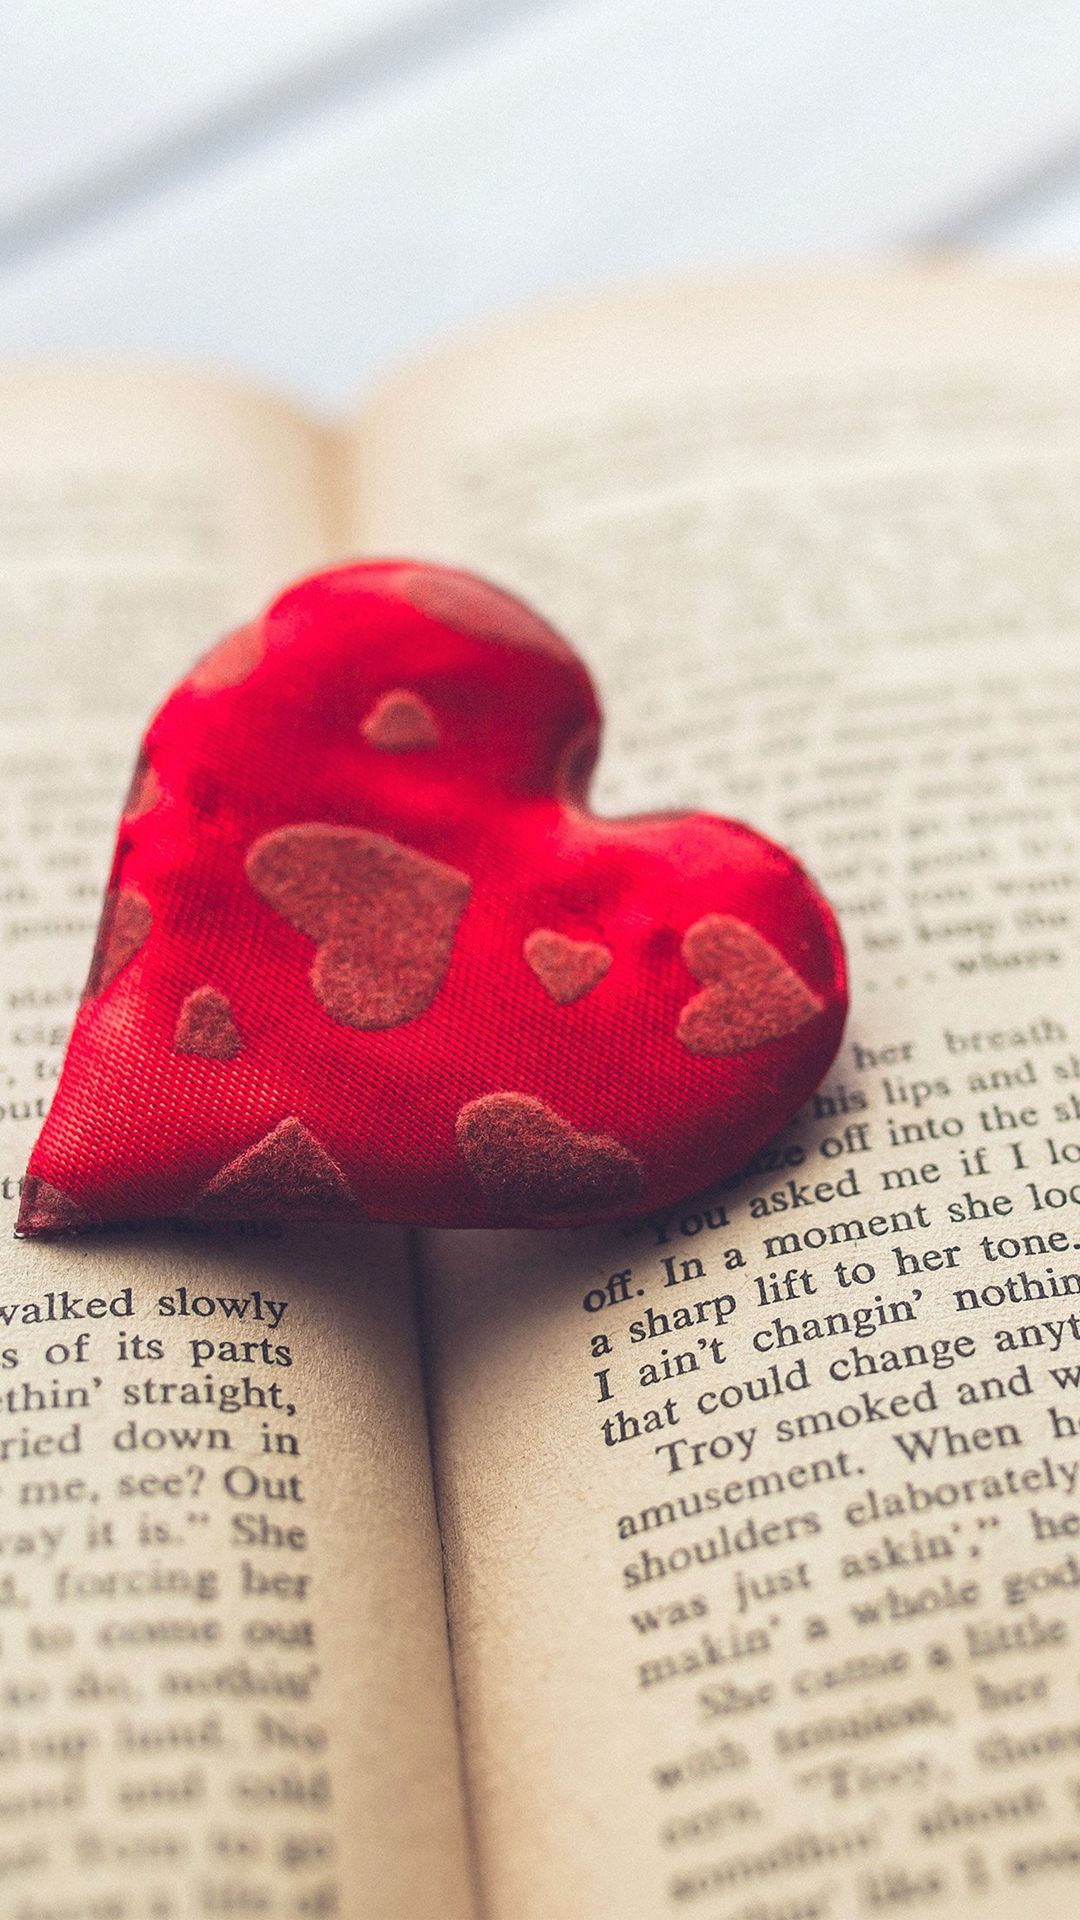 Romantic Heart Love Book Read Iphone 6 Plus Wallpaper